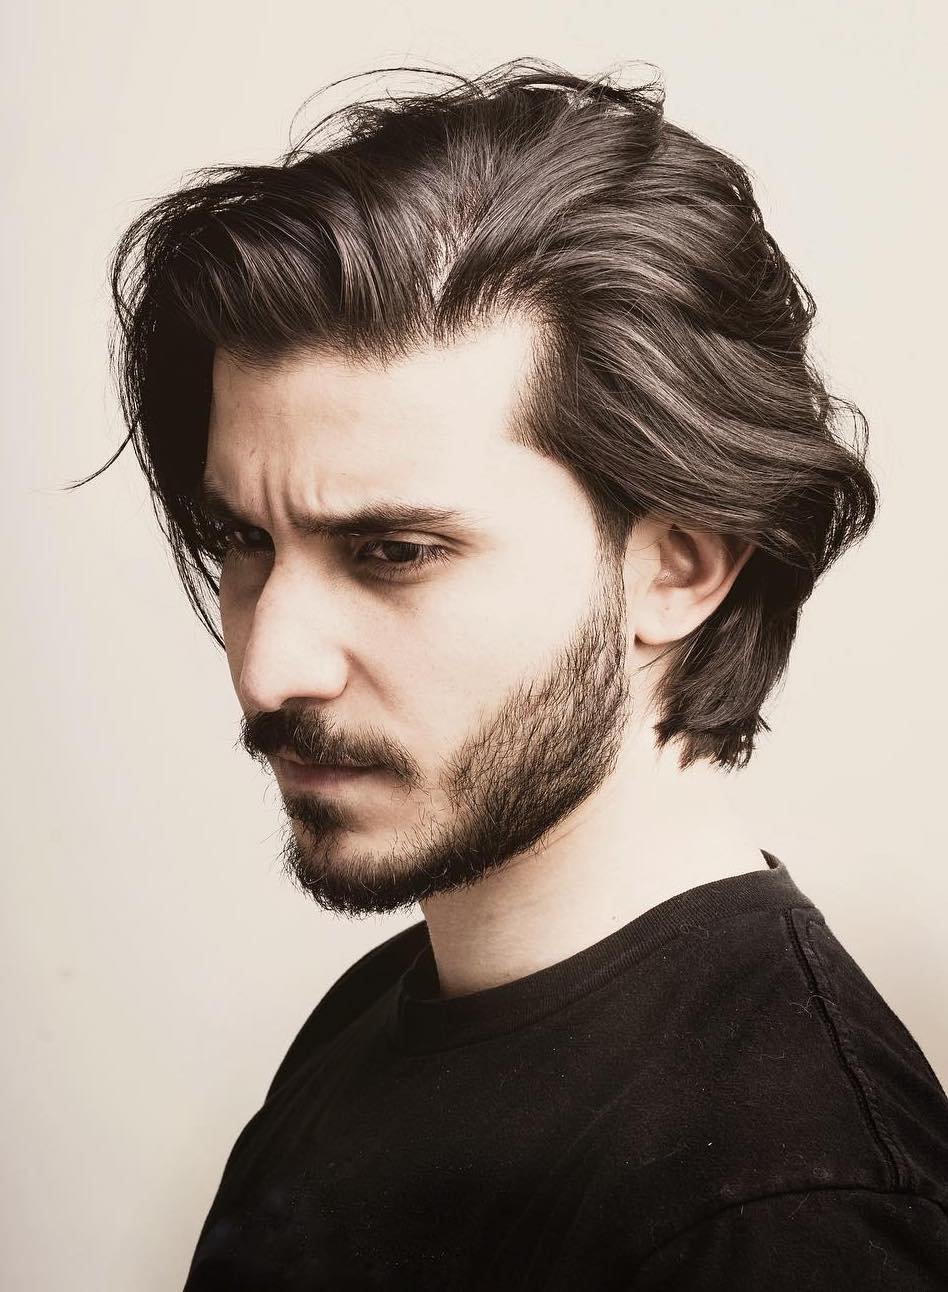 26 Latest Trends In Men S Hairstyles 2020 Latest Men Hairstyles Long Hair Styles Men Mens Hairstyles